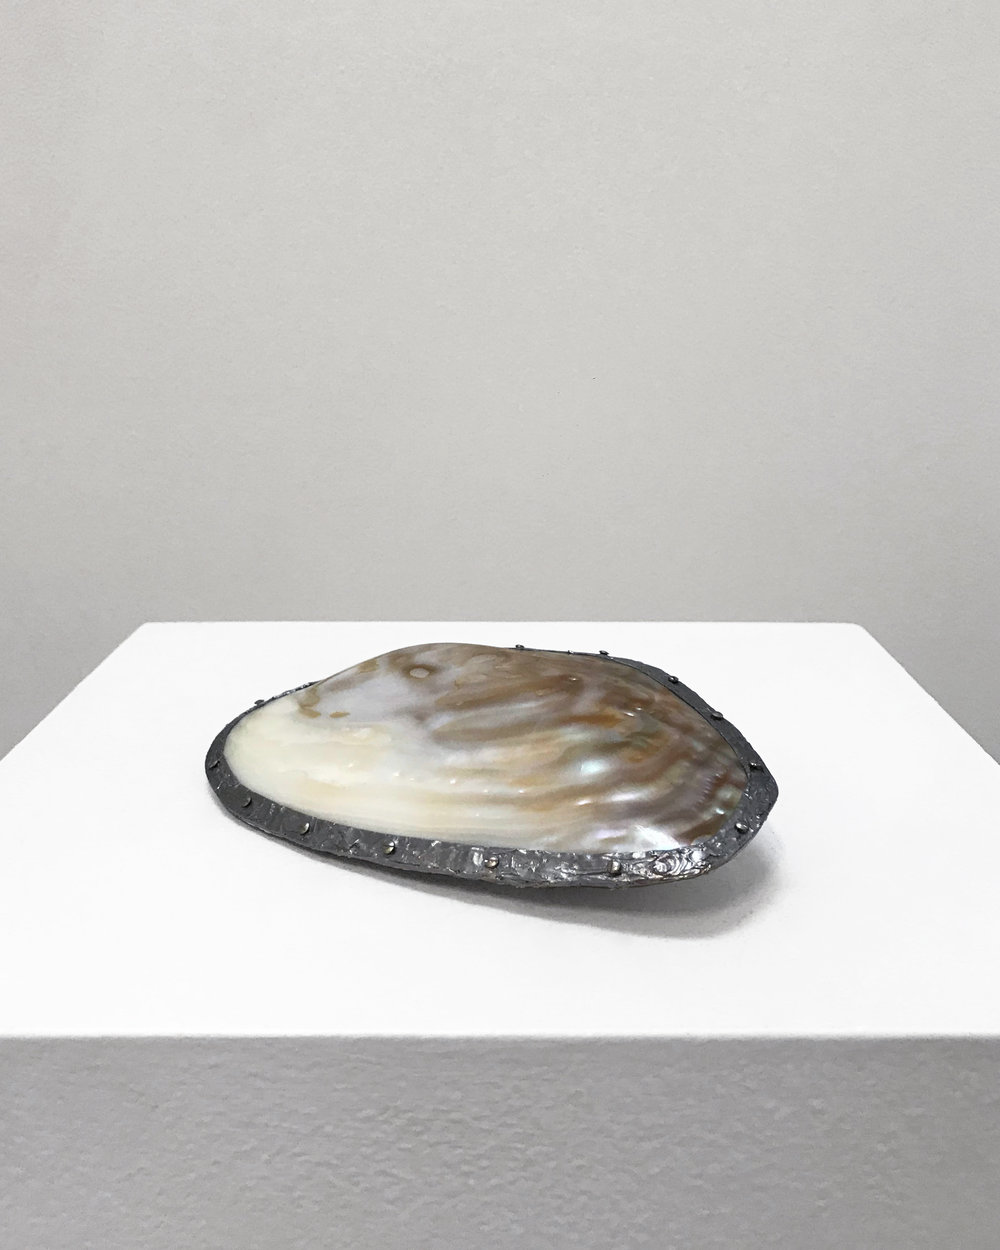 Bea Fremderman, Untitled, 2018. polished mother of pearl cebu clam, solder, screws, 7 x 3.5 x 2 inches